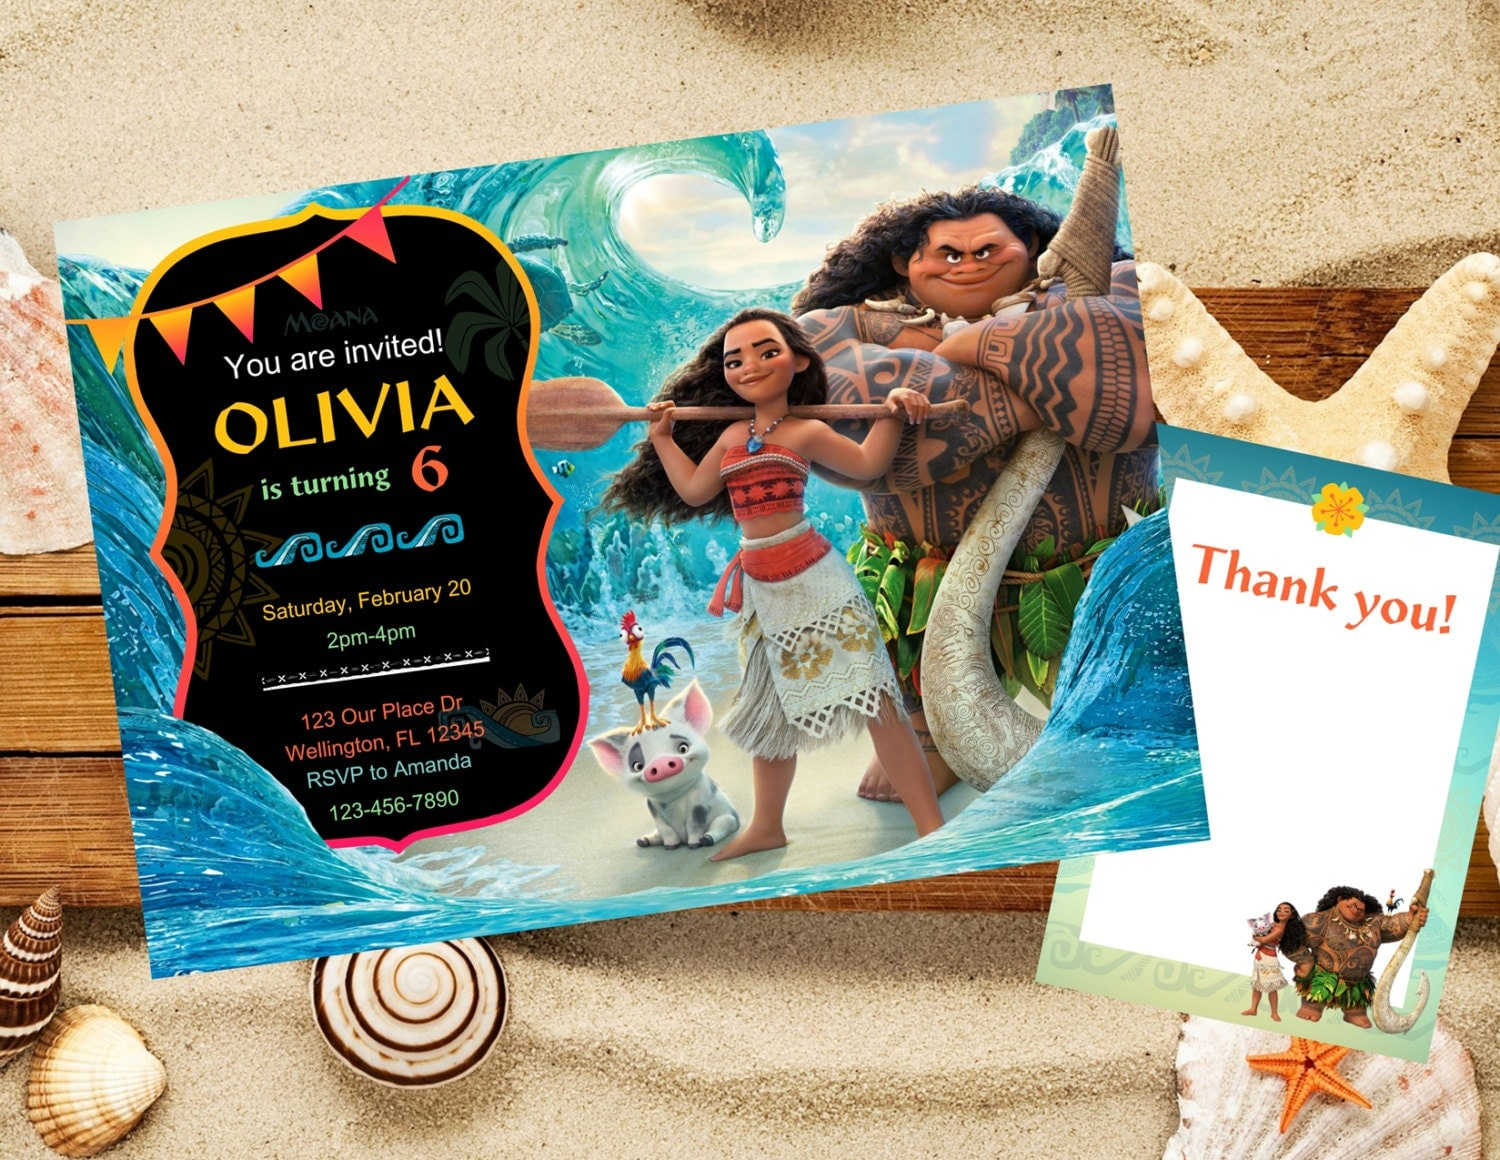 Moana Invitation Moana Birthday Invitation Disney Moana